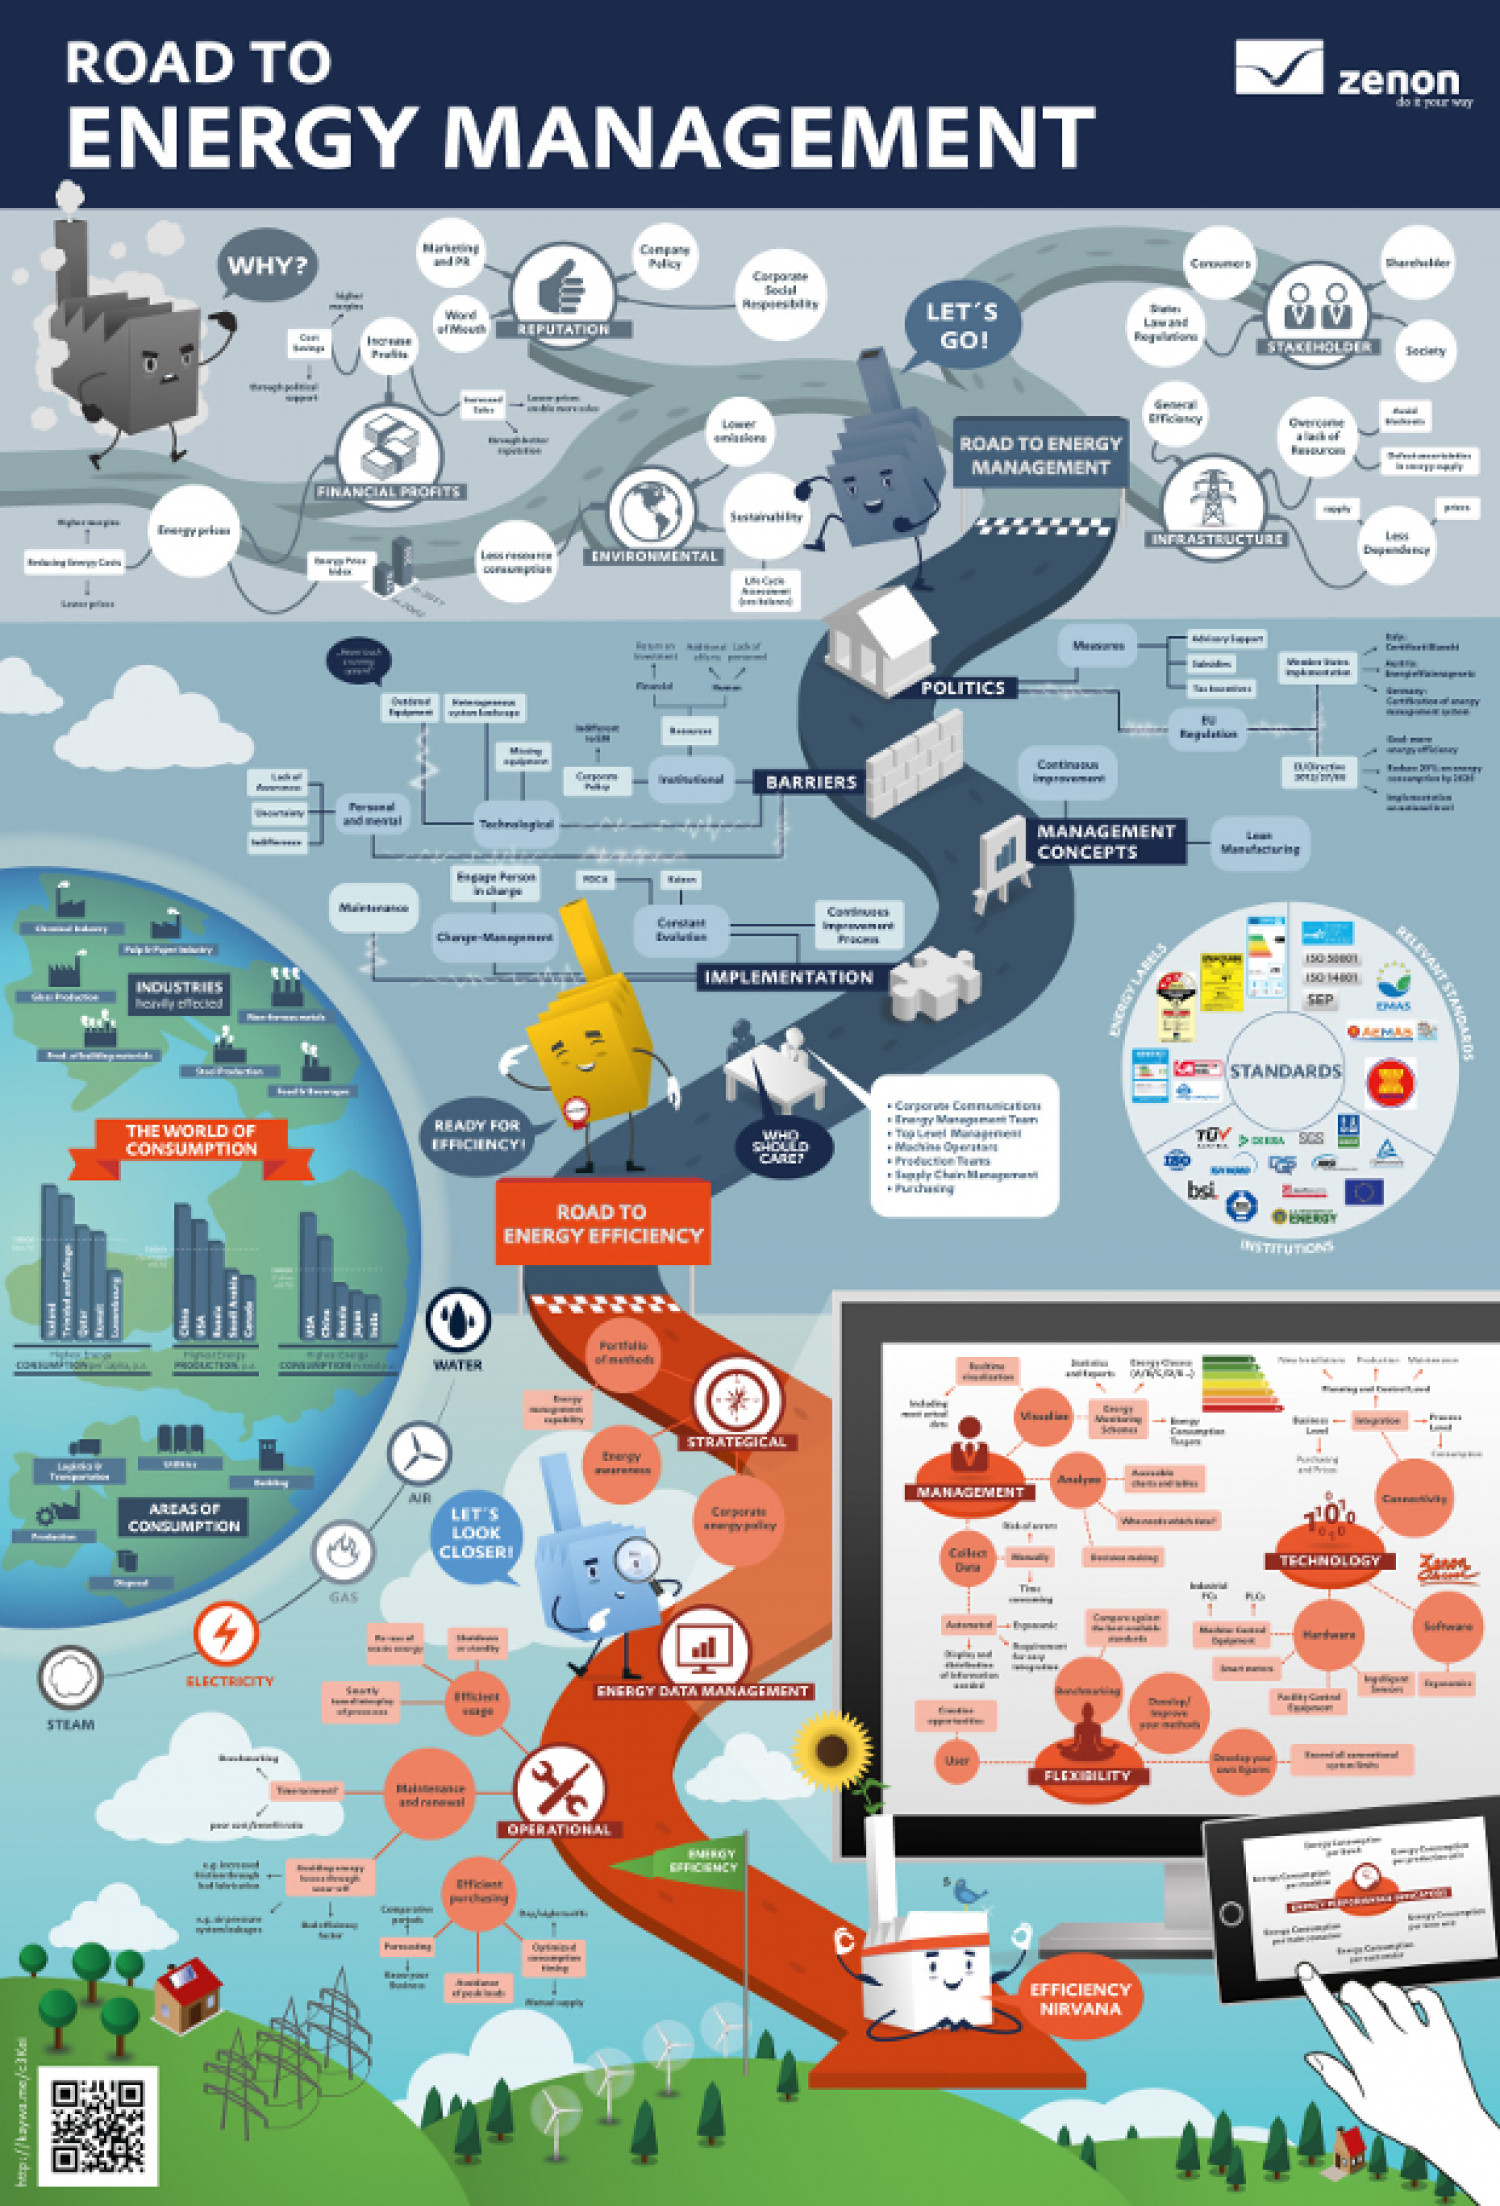 Road to Energy Management Infographic